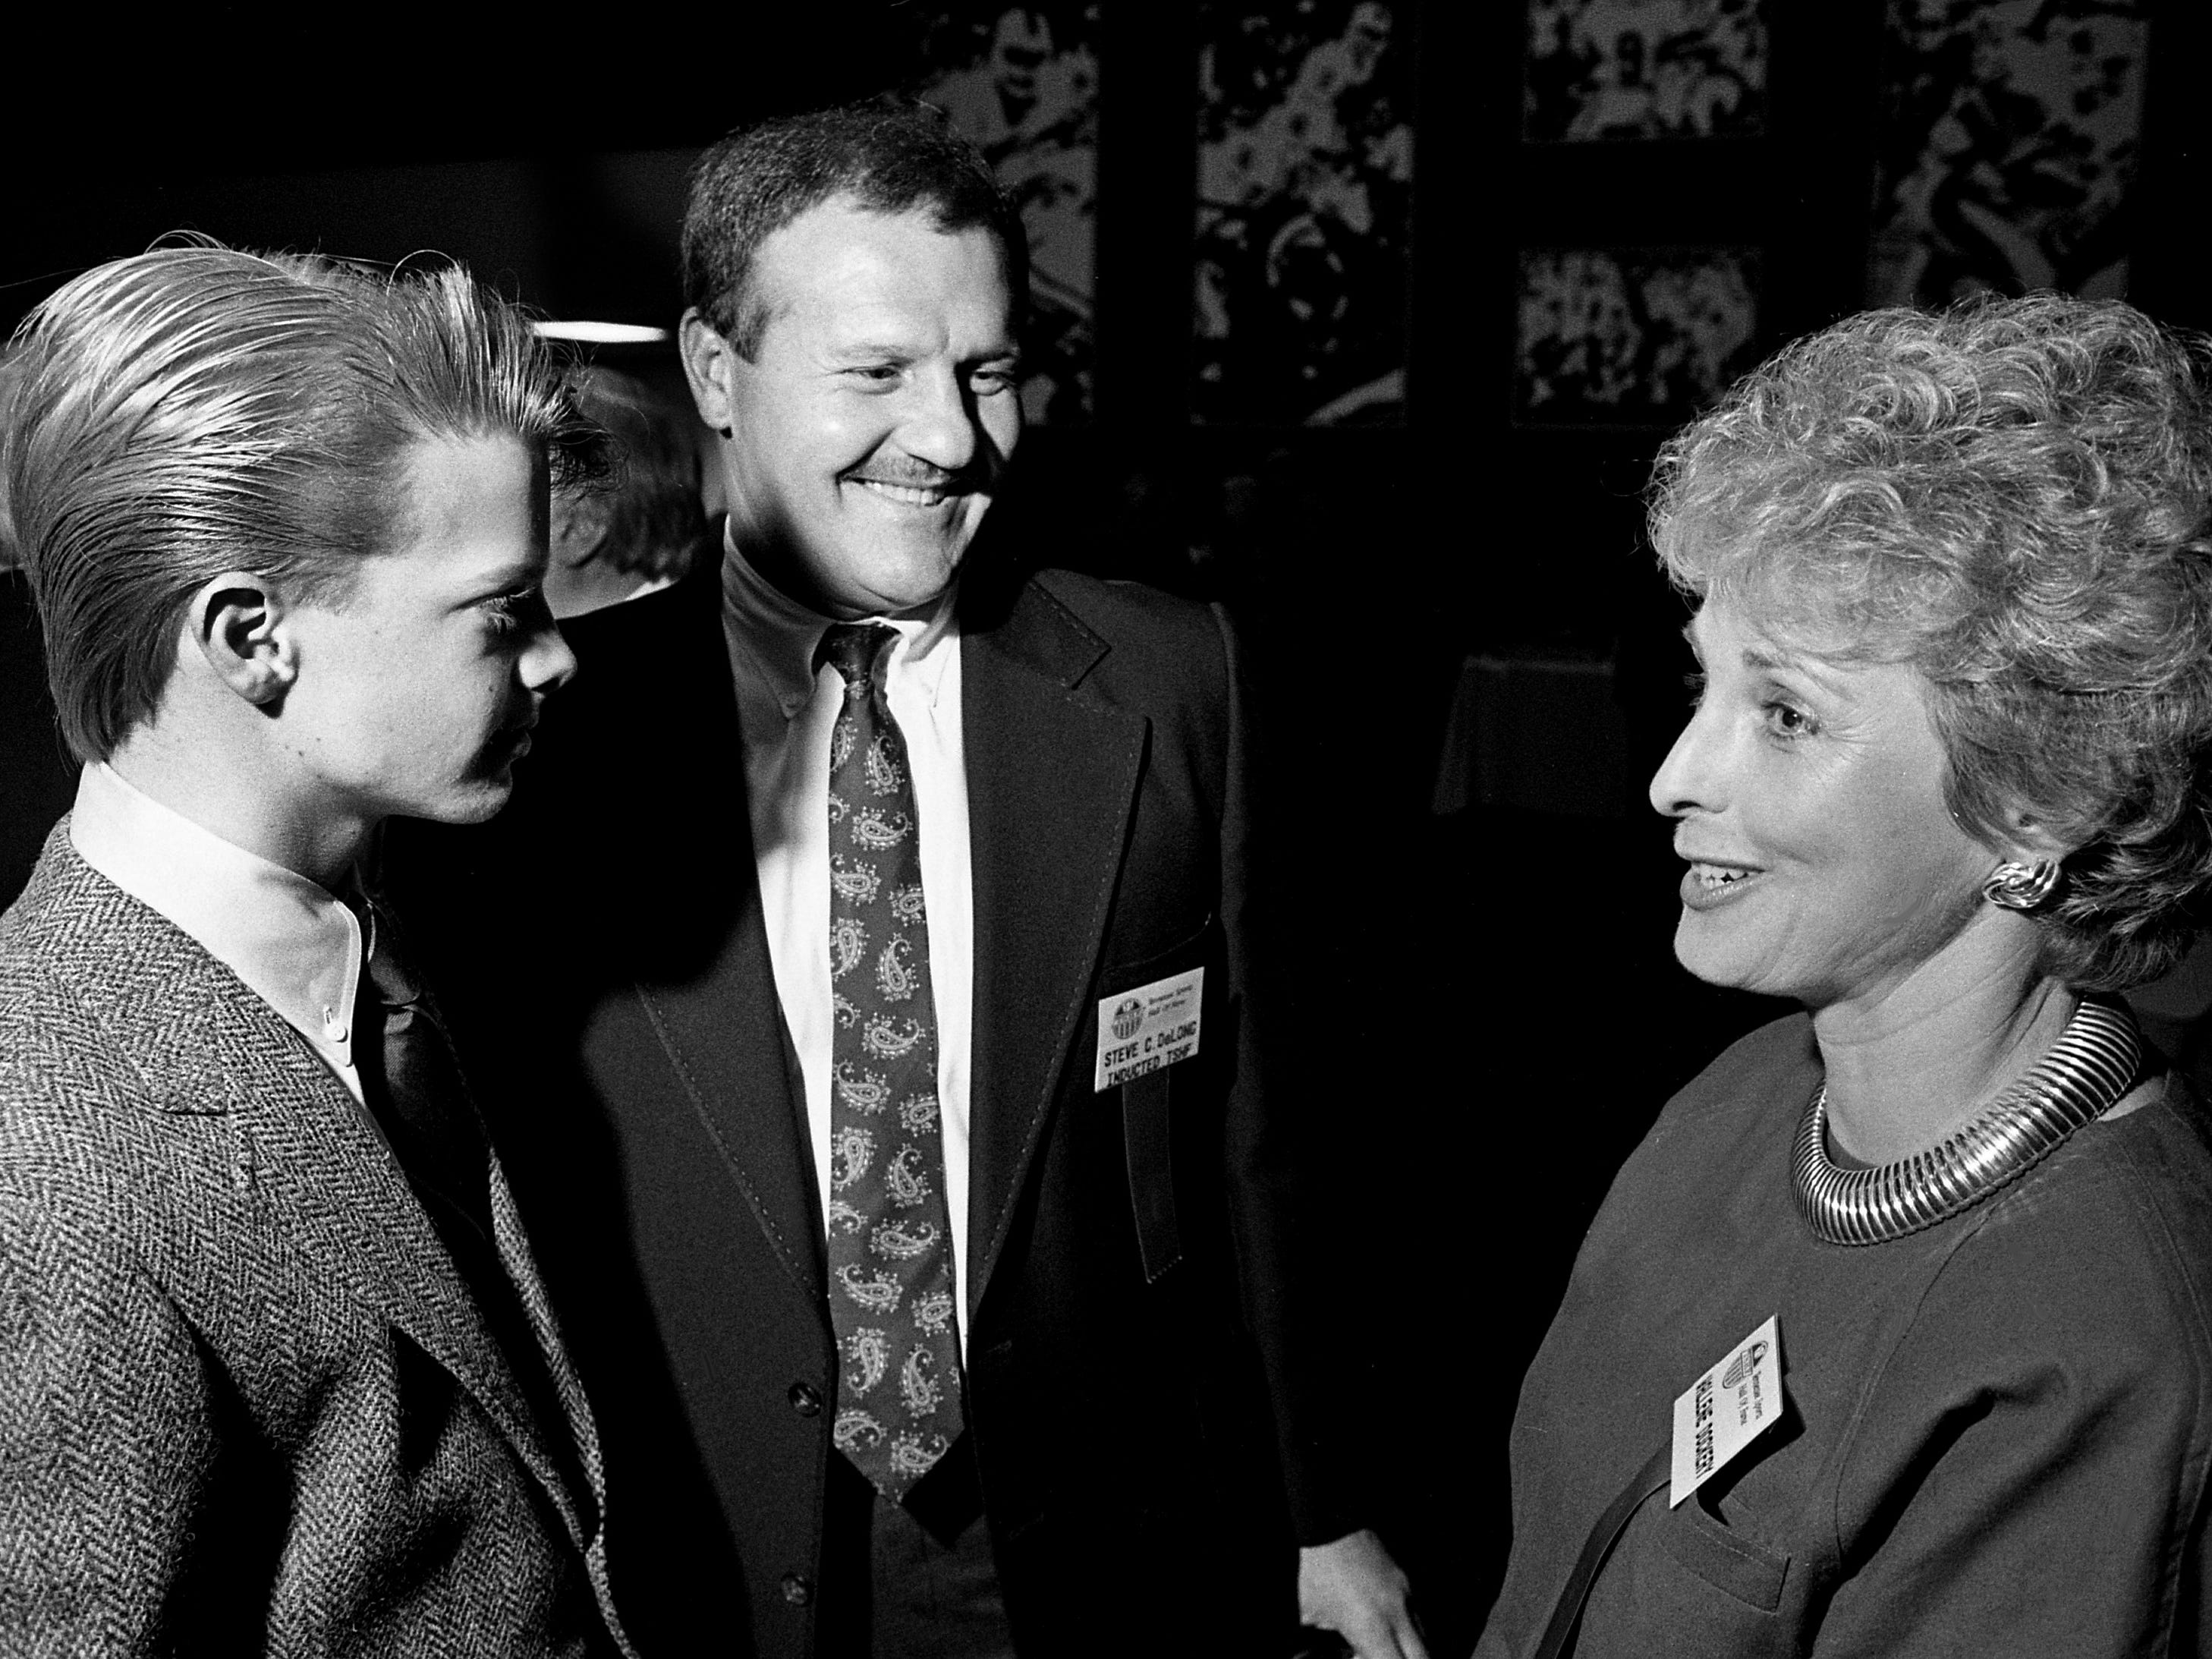 Inductee Steve DeLong, center, shares a moment with Wallene, left, and Dee Dockery during the Tennessee Sports Hall of Fame's annual banquet at the Vanderbilt Stadium Club on Feb. 17, 1989. Wallene and Dee are the son and wife of late Memphis State football coach Rex Dockery, who was posthumously inducted into the hall along with late Tennessee State football coach John Merritt.